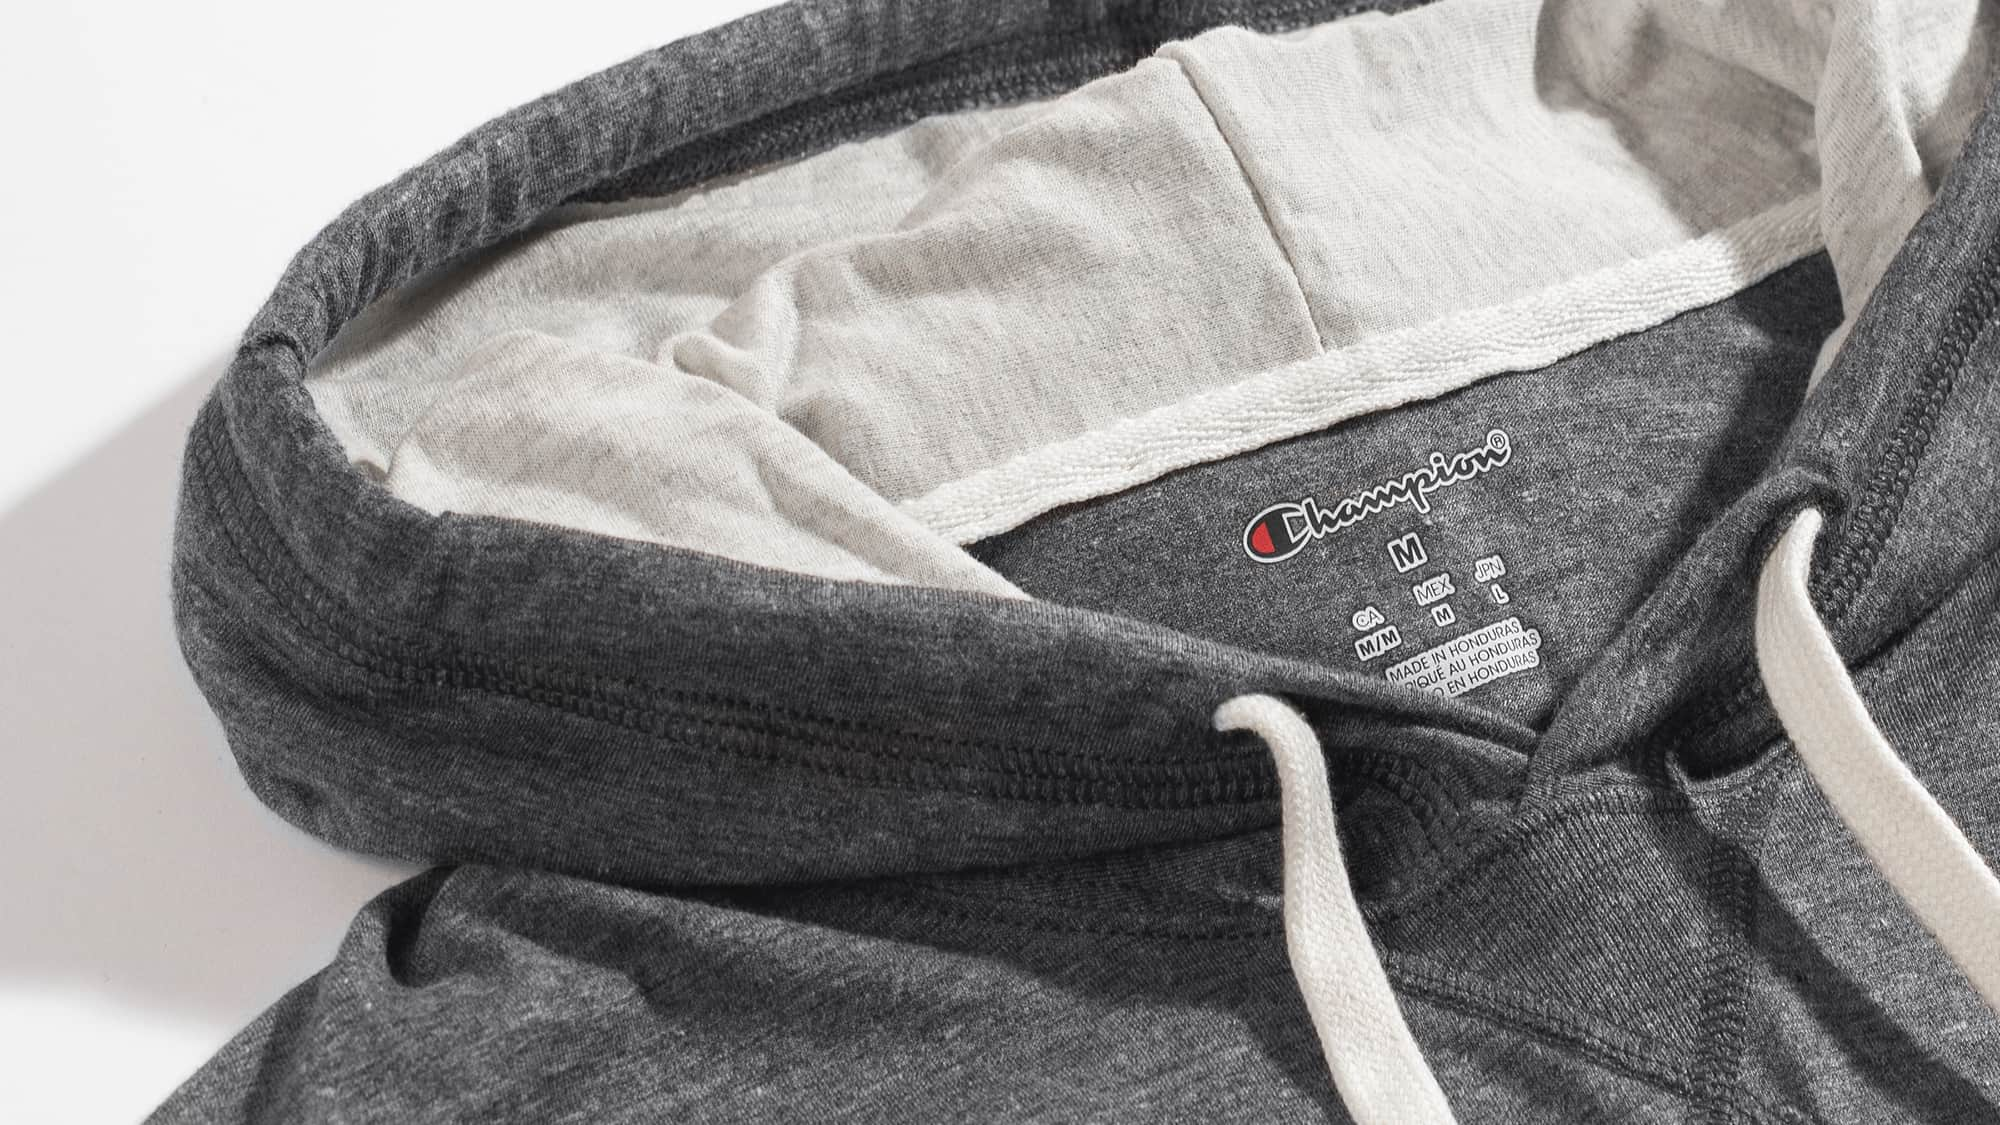 A detail view of a Champion brand hoodie.